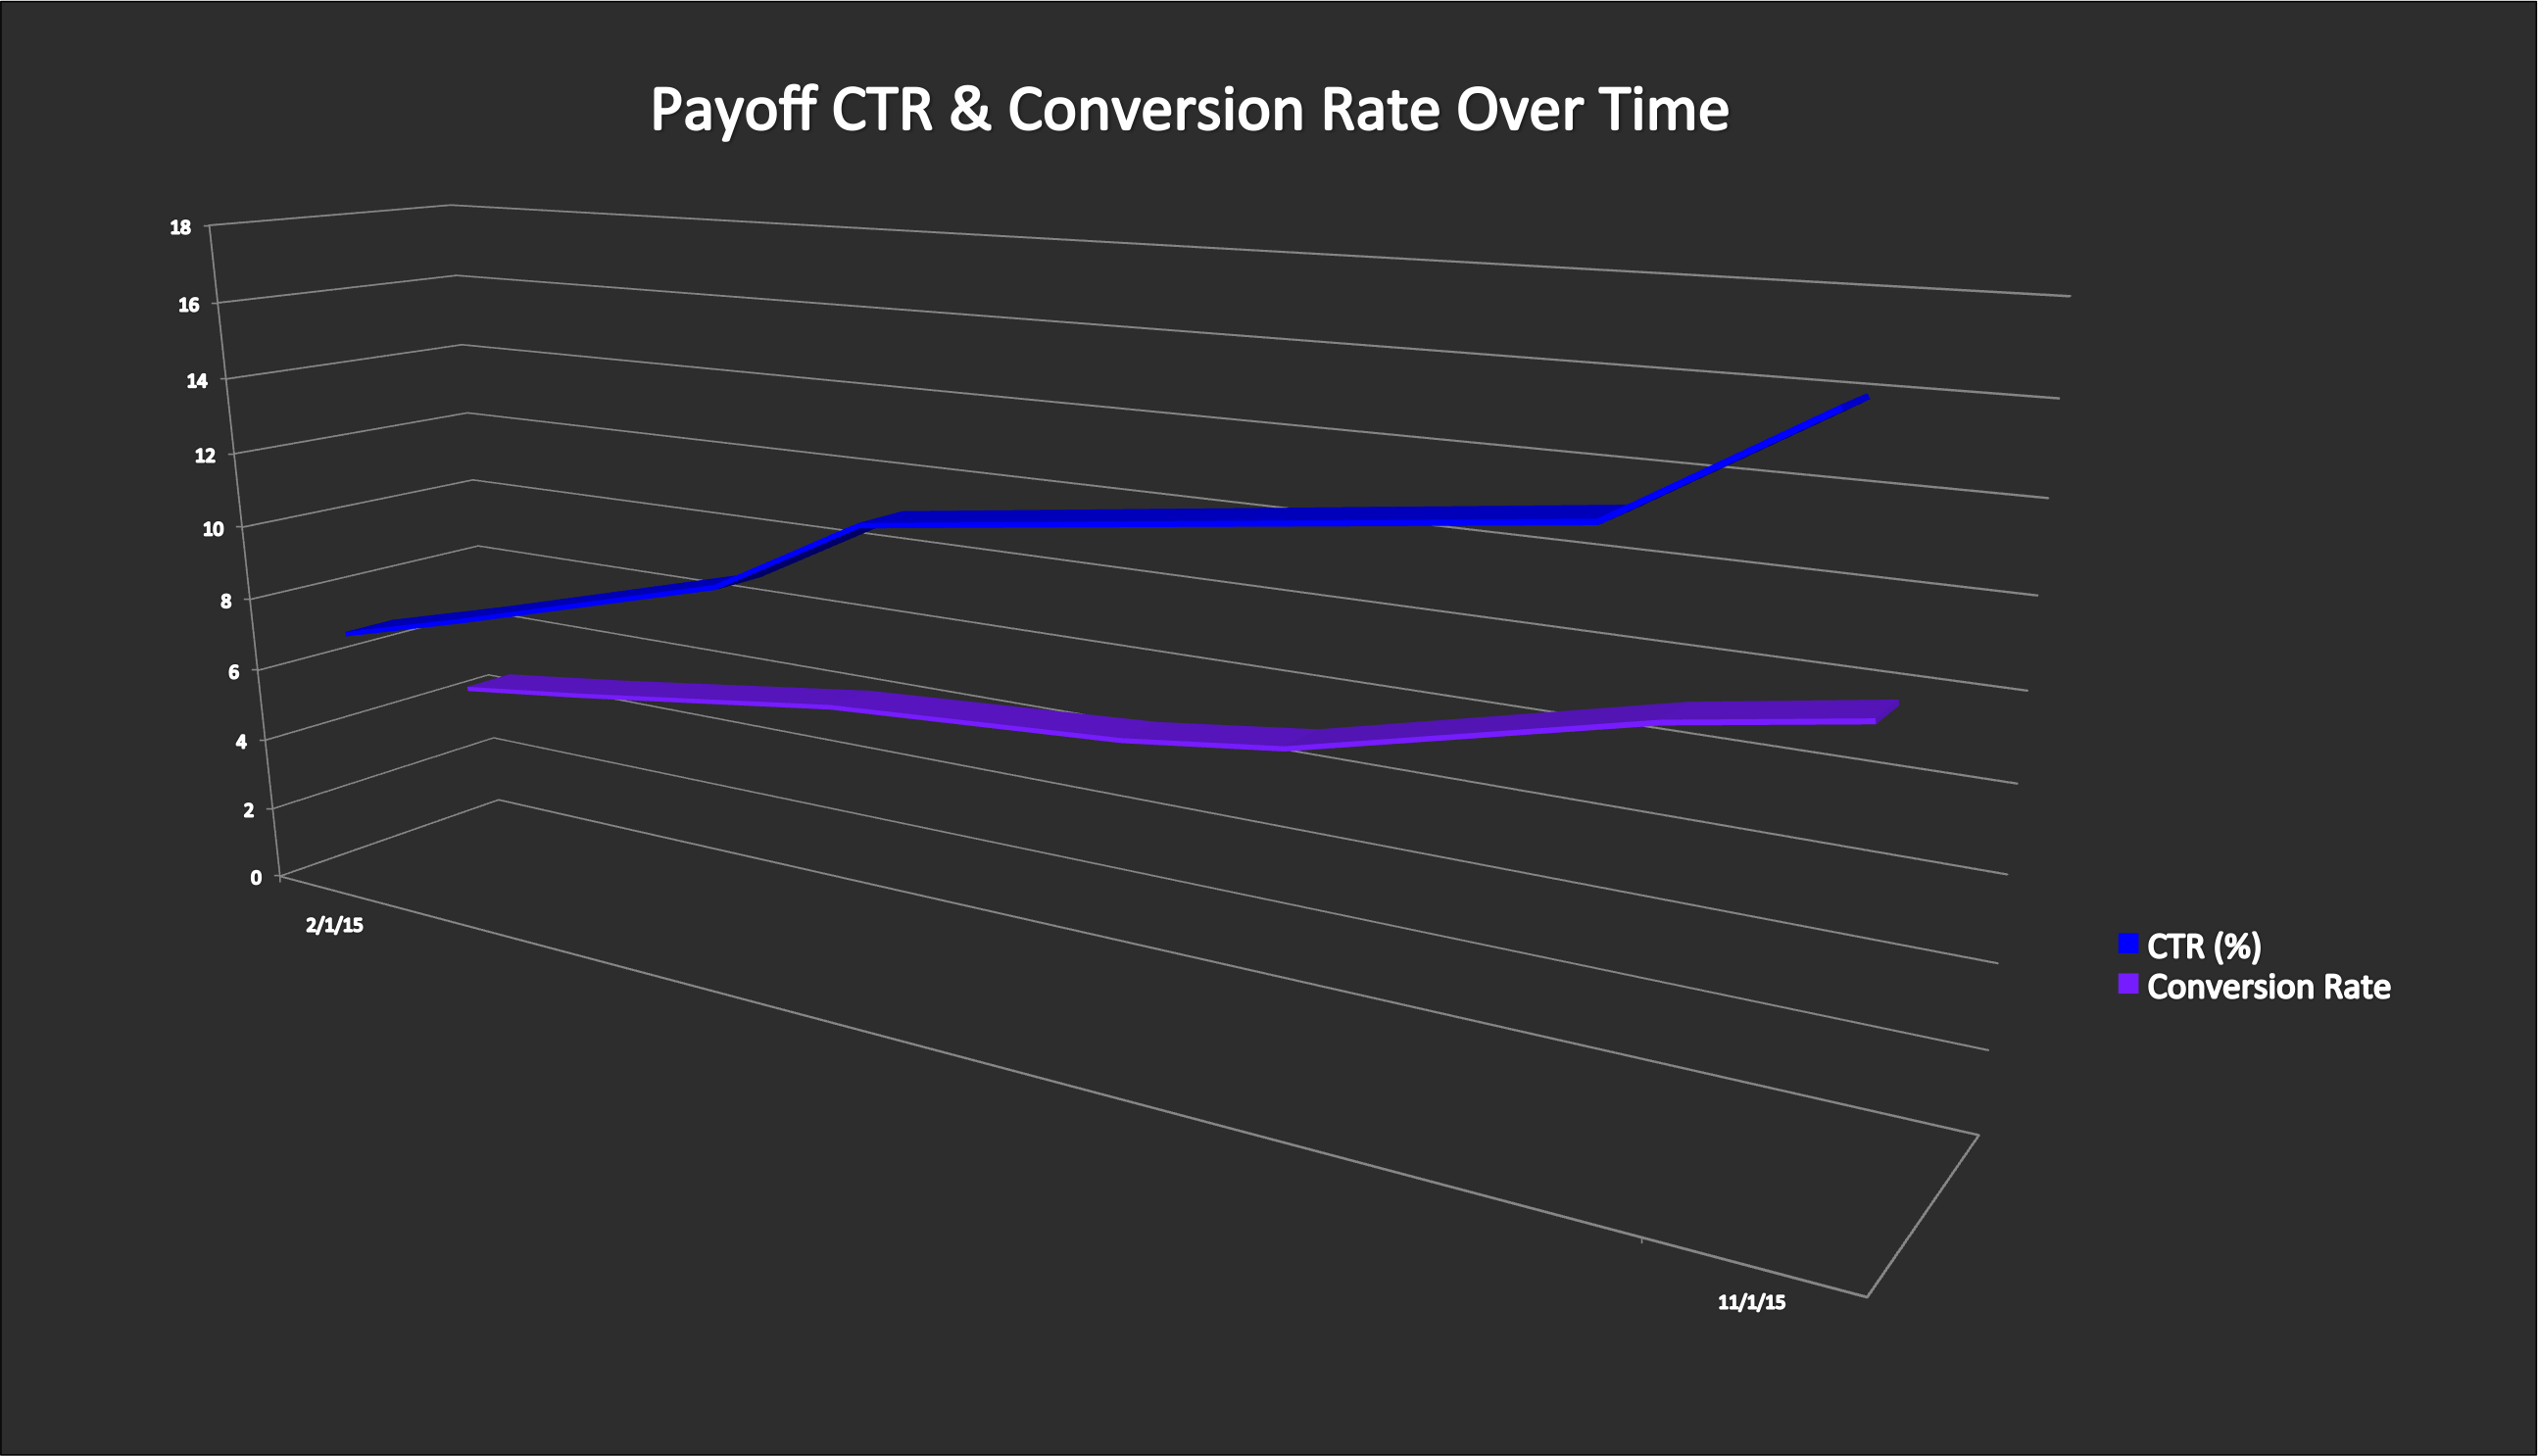 Payoff CTR & Conversion Rate over time